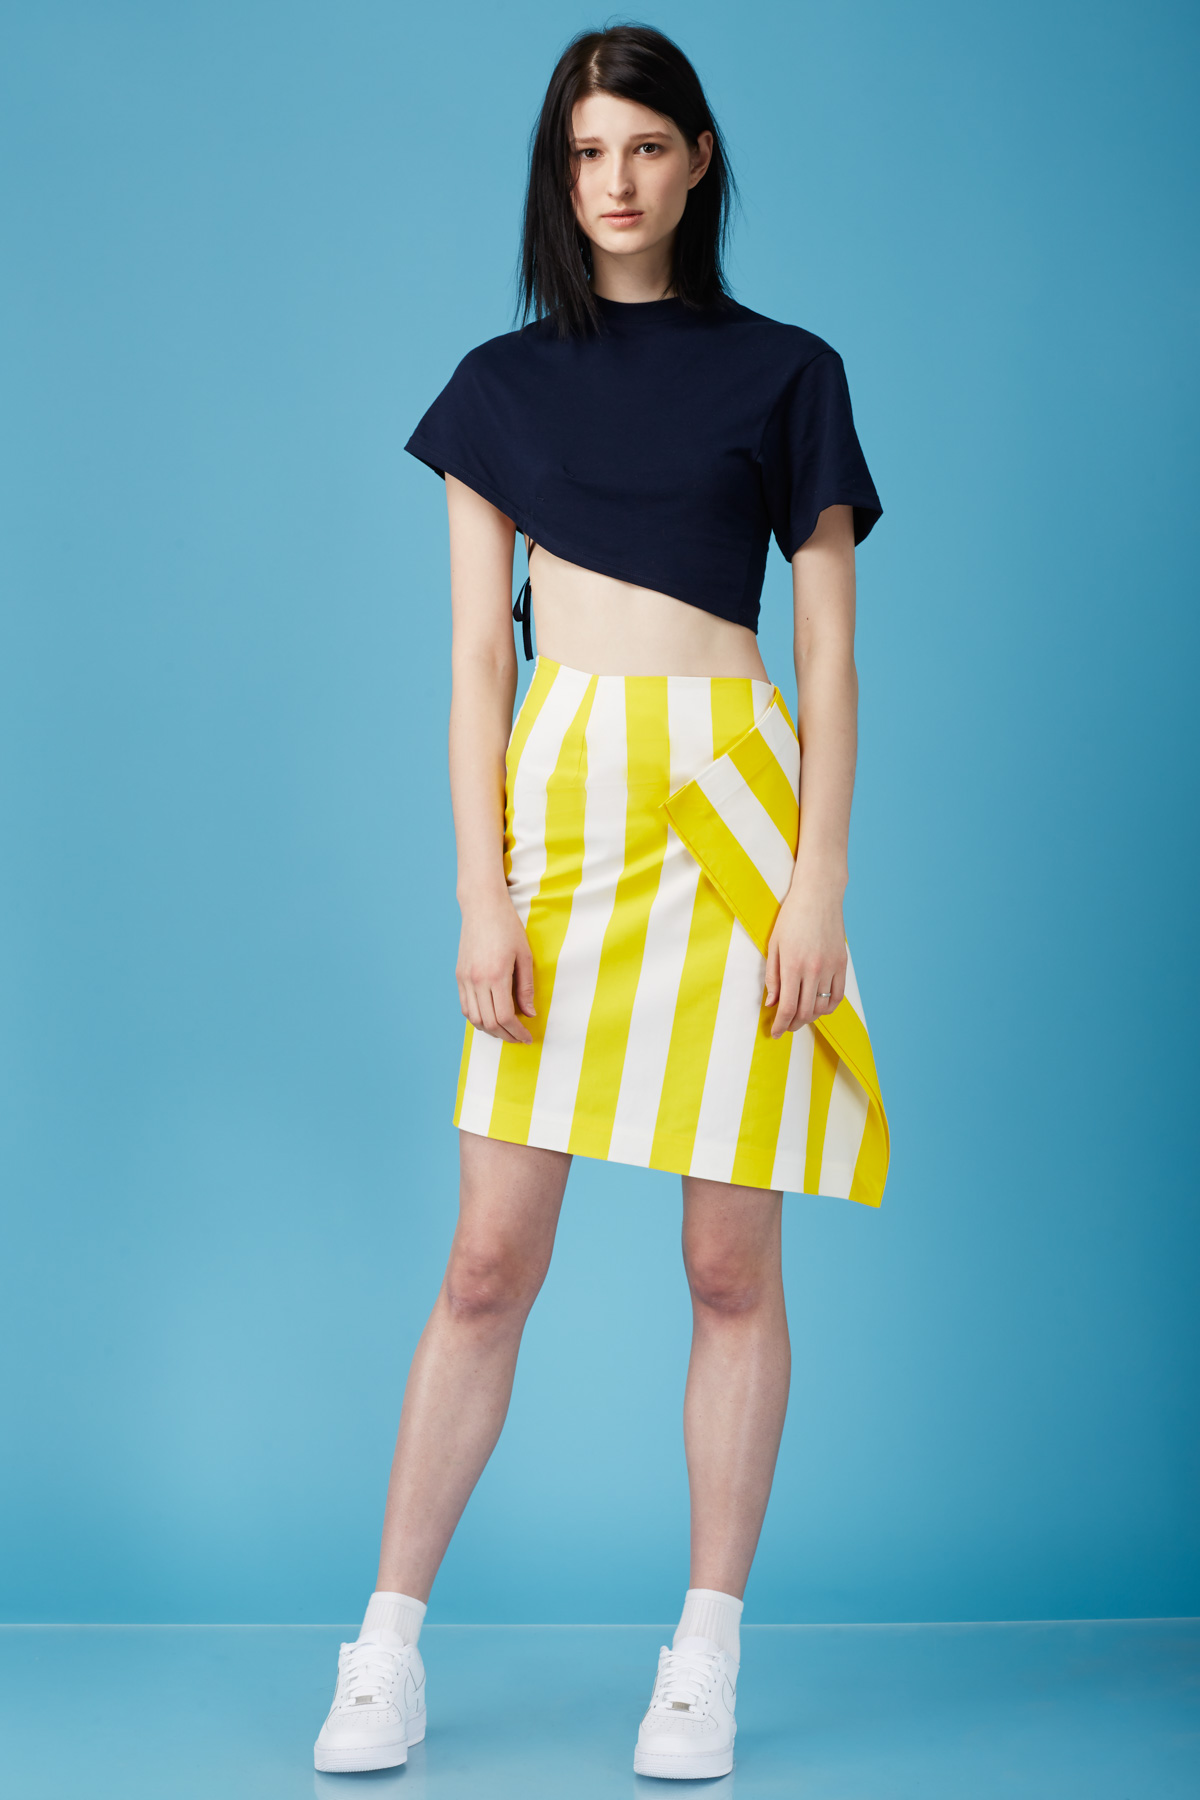 Jacquemus SS15 is taking us to the beach